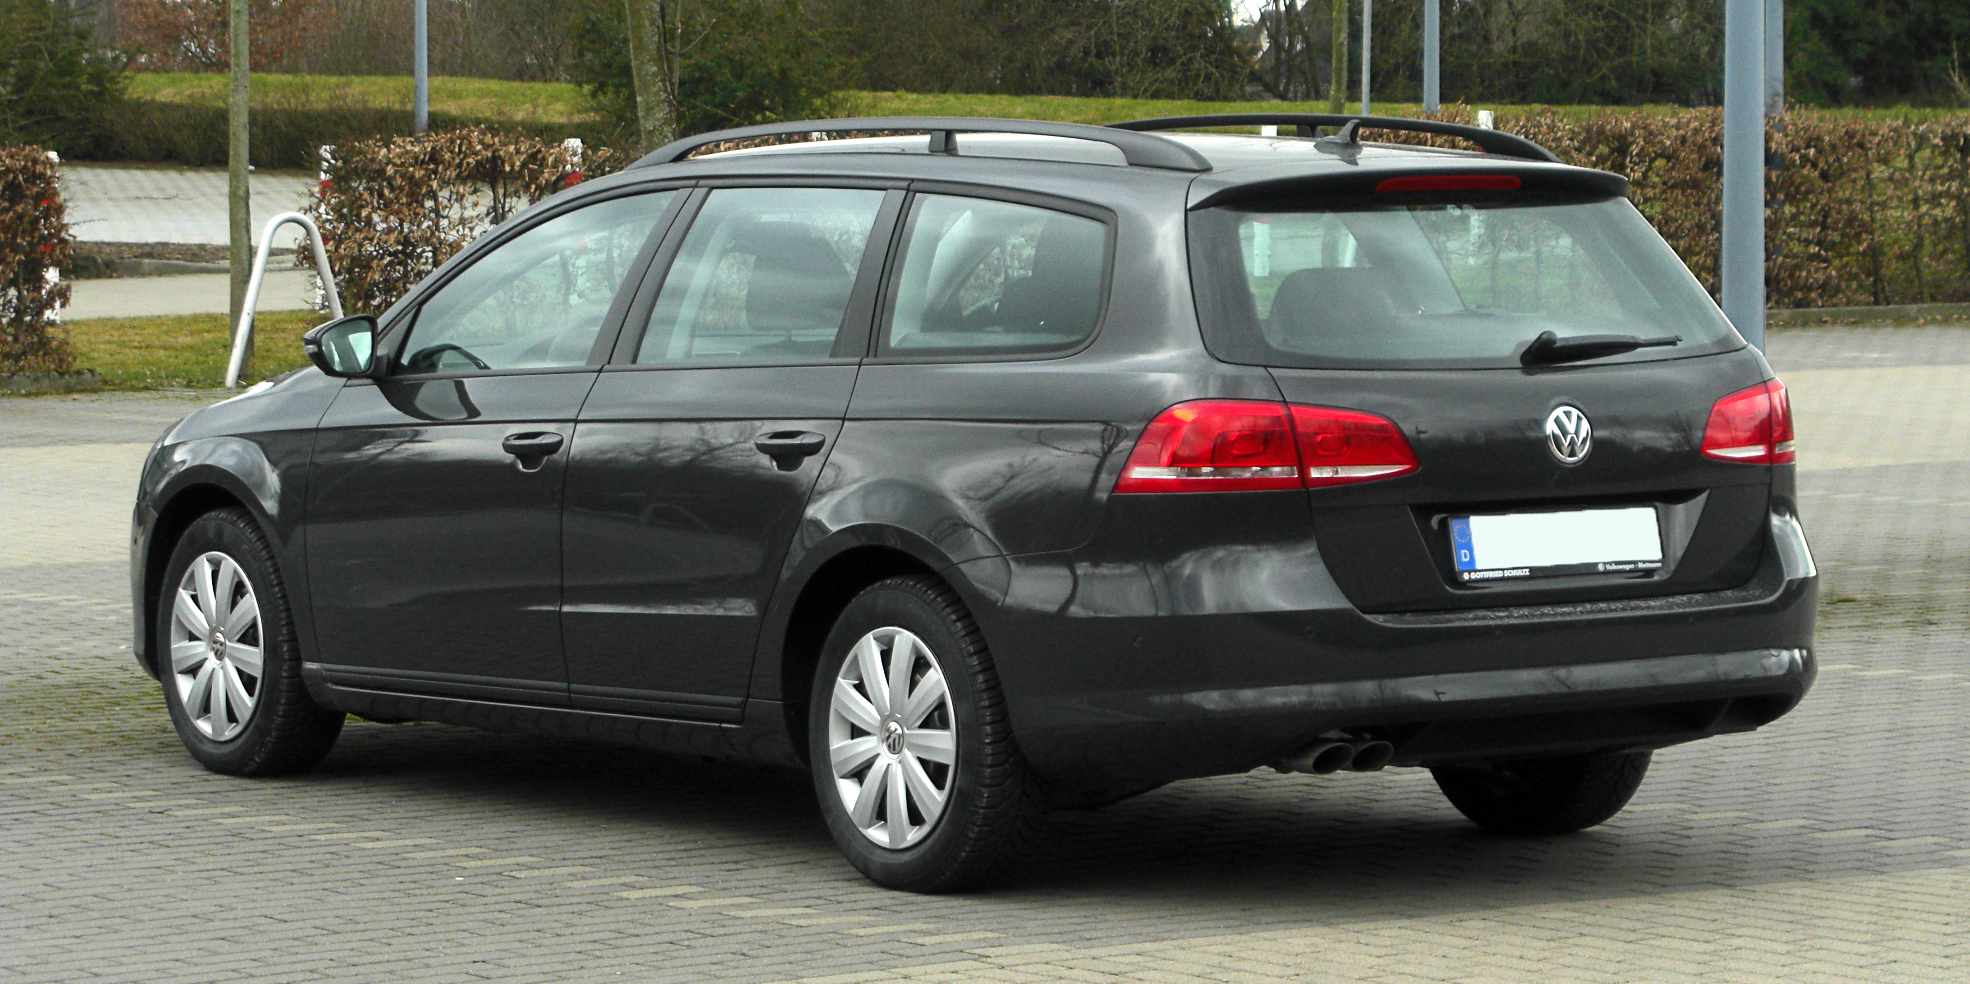 2013 volkswagen passat variant b7 pictures. Black Bedroom Furniture Sets. Home Design Ideas